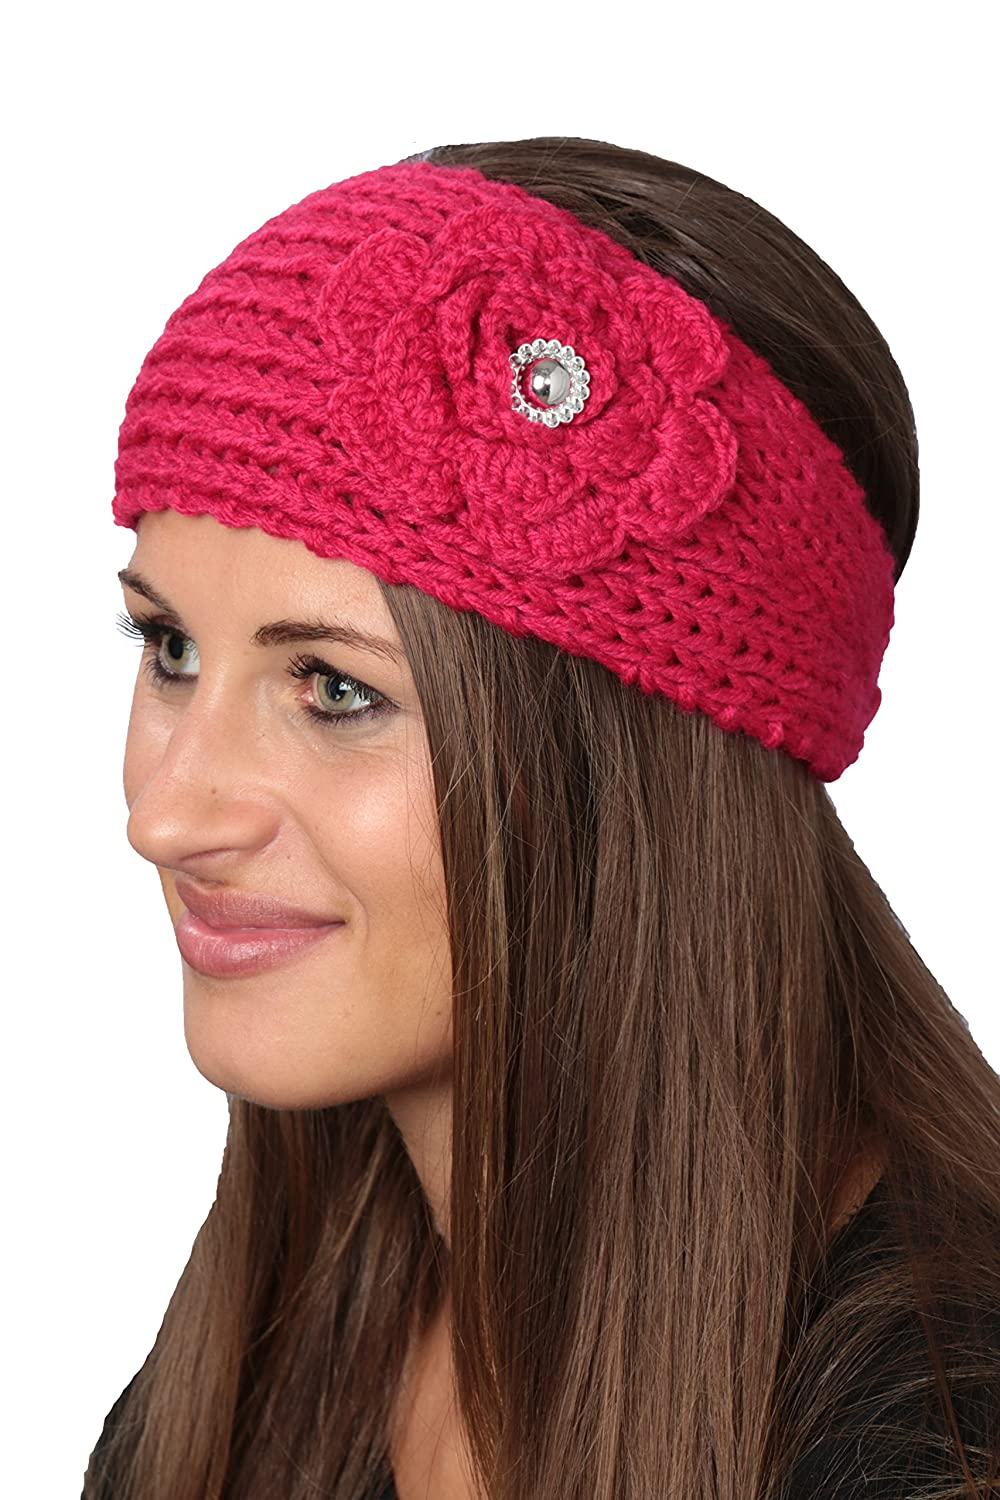 """CUTE GIFT"" Women's Warm Fashion Headbands/ Ear warmer/ 4 Styles/ 2 Pack"